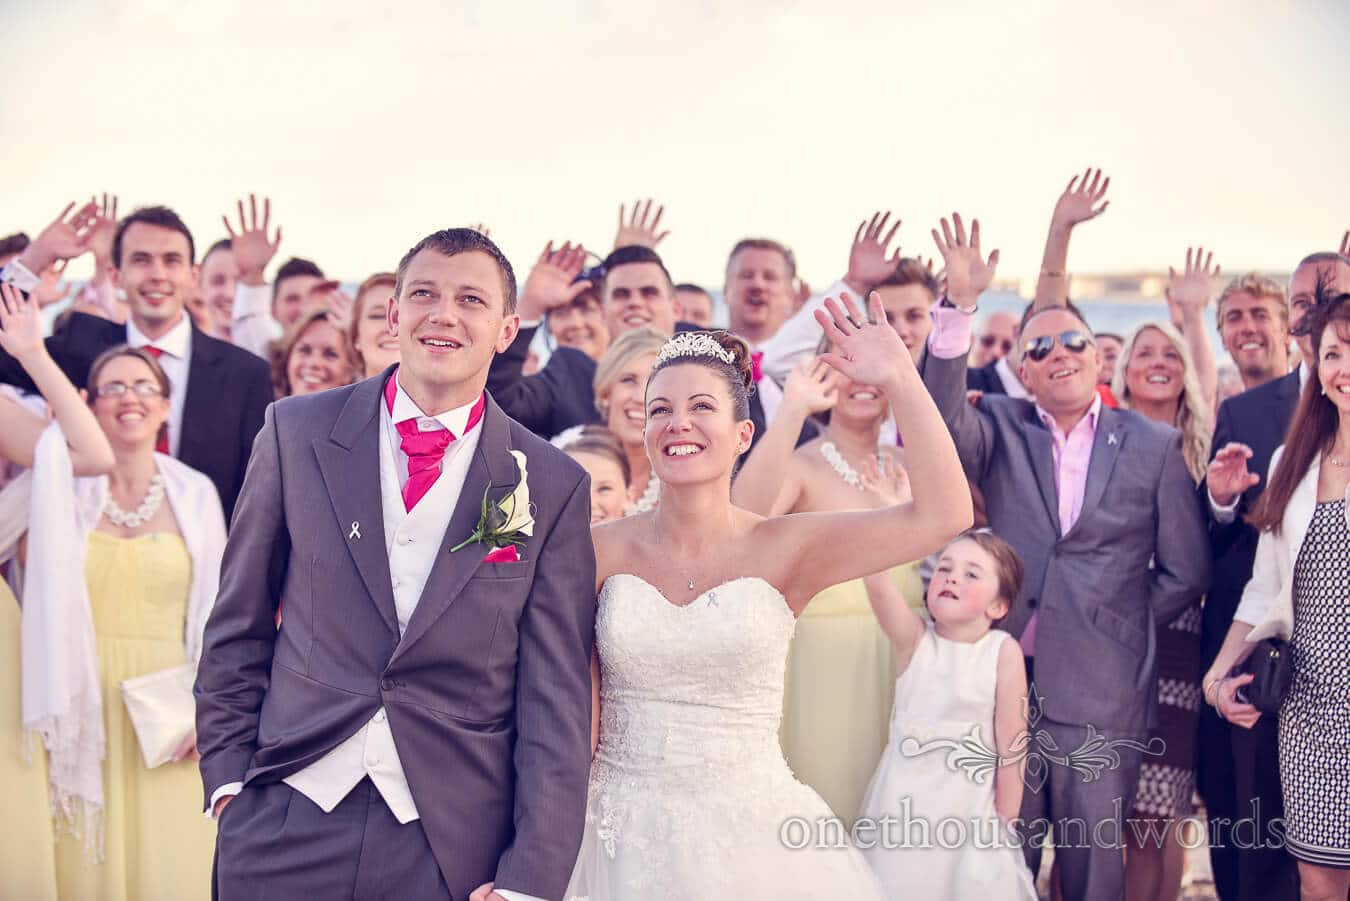 Newlyweds and guests at Haven hotel wedding